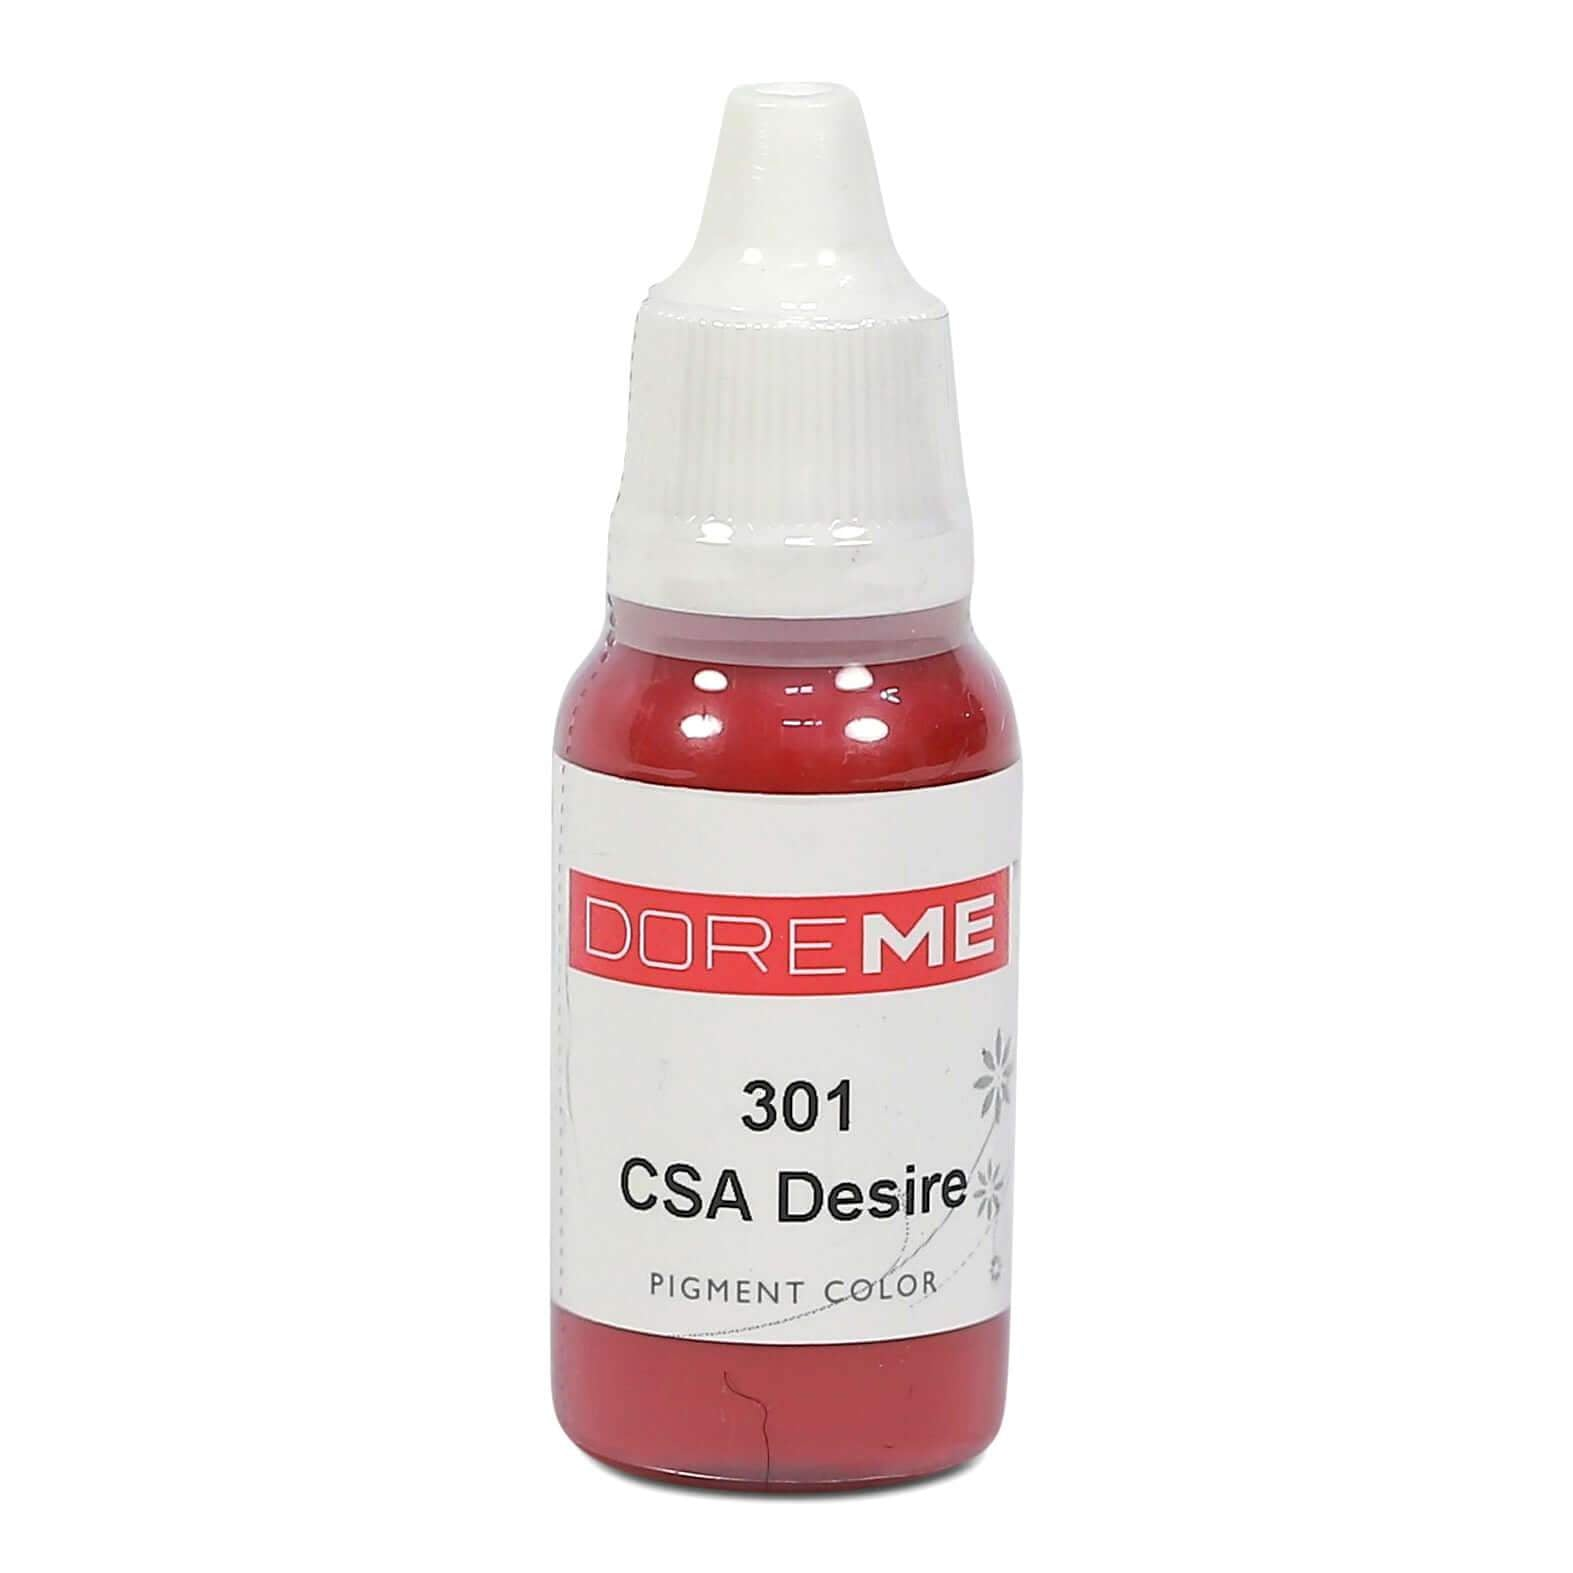 Permanent Makeup pigments Doreme Micropigmentation Eyebrow, Eyeliner, Lip Colours 301 CSA Desire (c) - Beautiful Ink UK trade and wholesale supplier